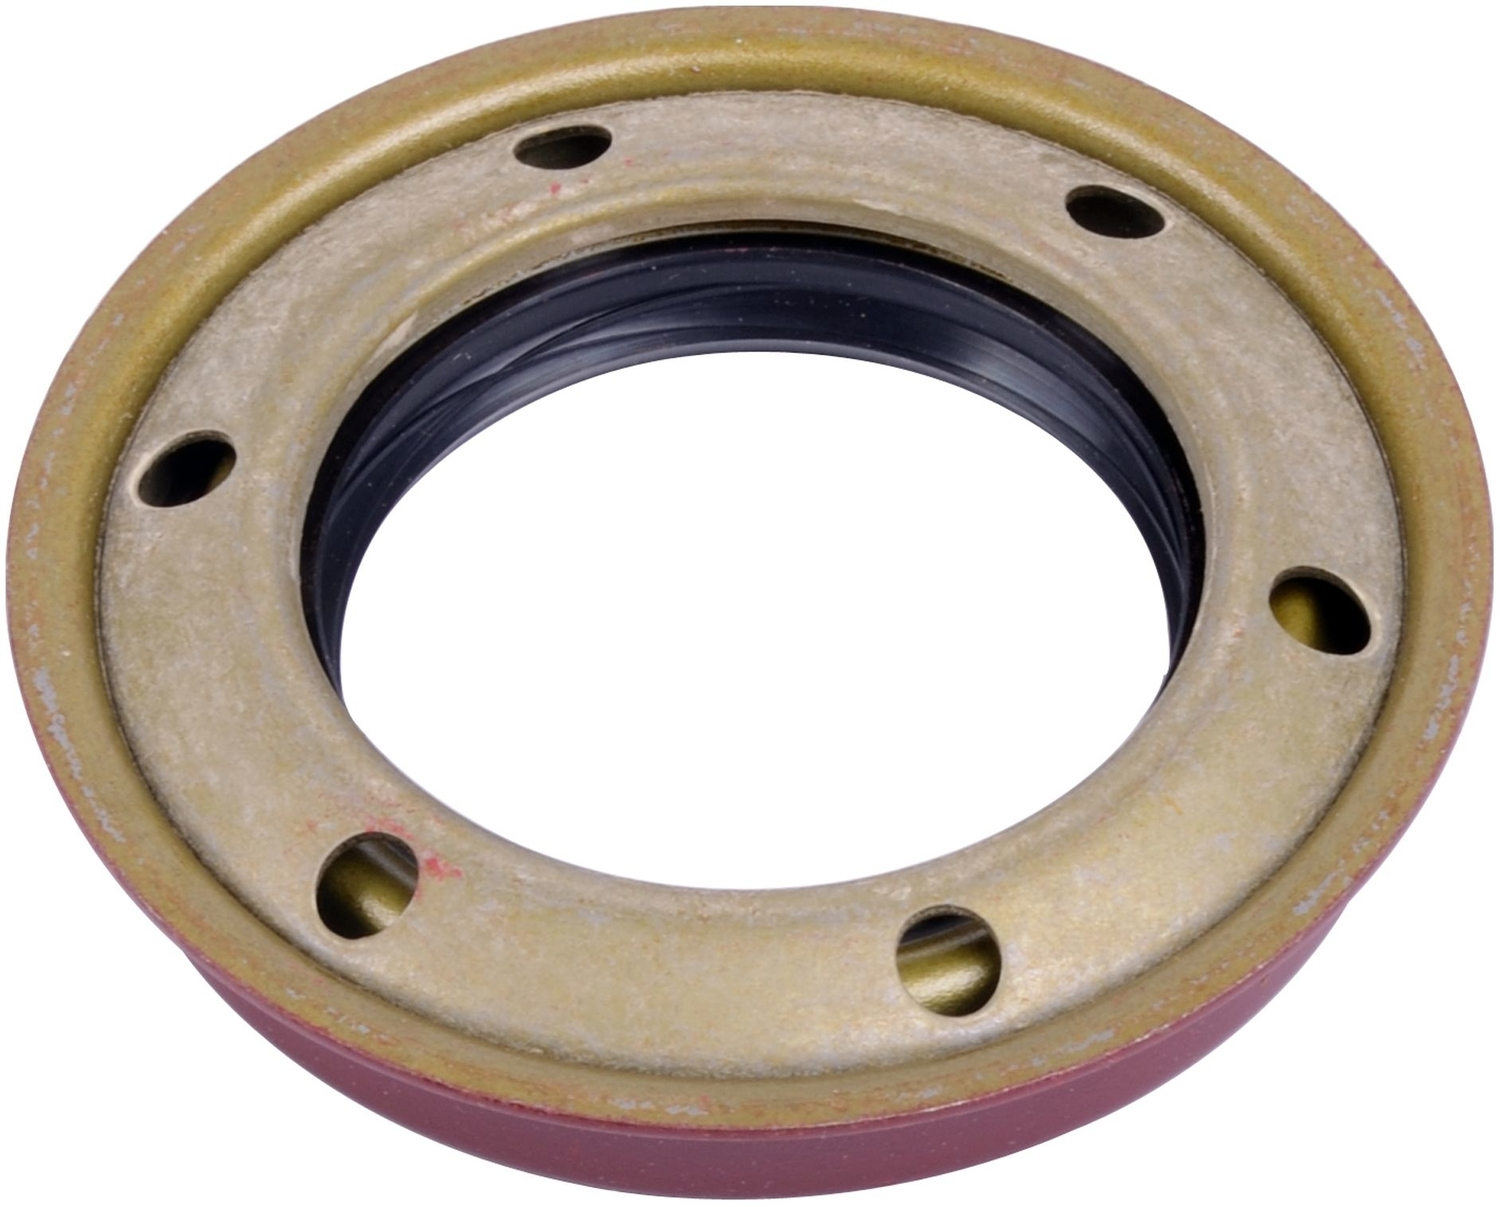 SKF (CHICAGO RAWHIDE) - Axle Shaft Seal (Front Left) - SKF 16901